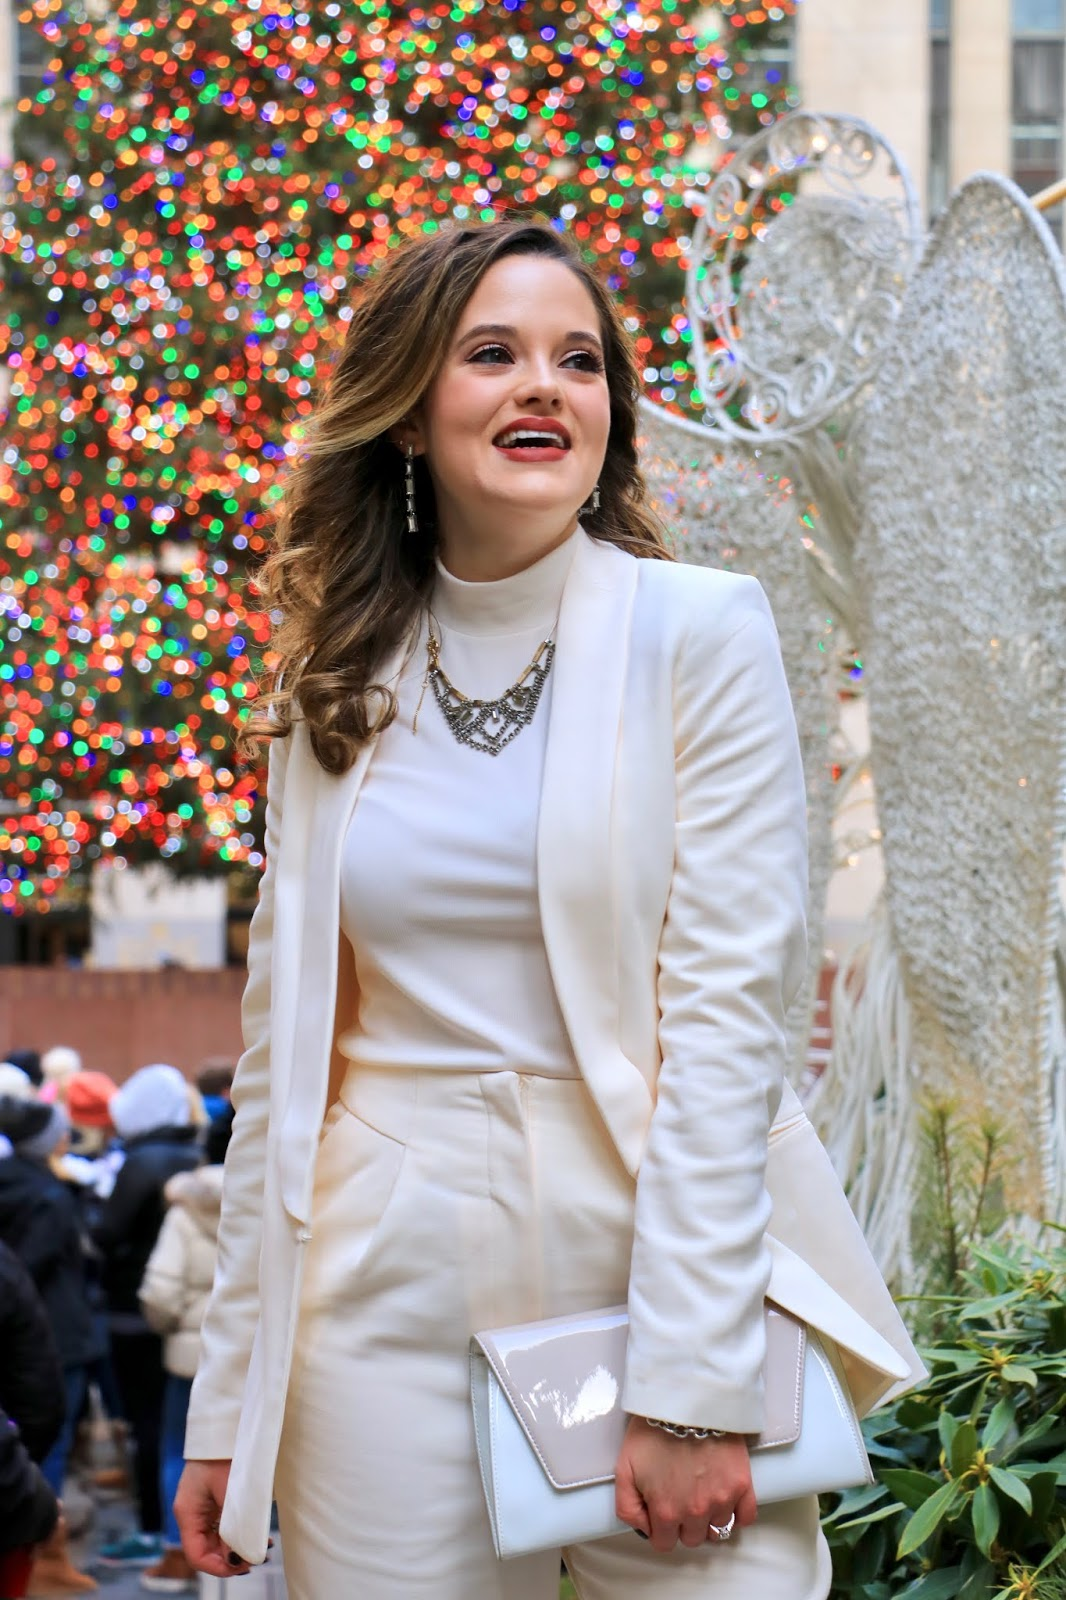 Nyc fashion blogger Kathleen Harper wearing an all-white suit.